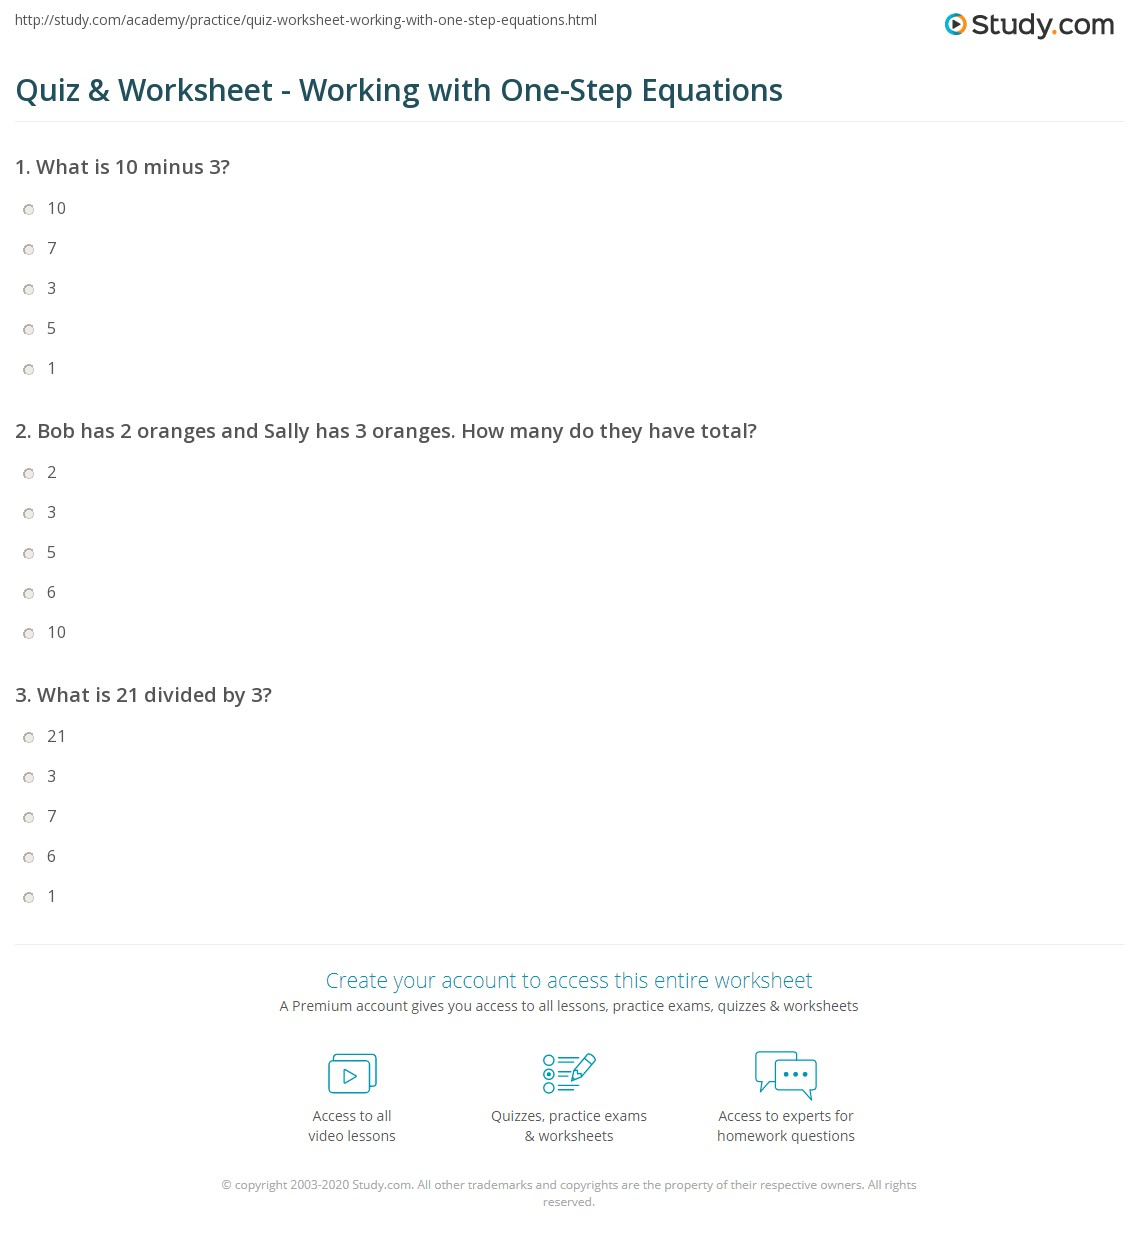 Worksheets Solving Multi Step Equations Worksheet Answers quiz worksheet working with one step equations study com print defining translating solving worksheet